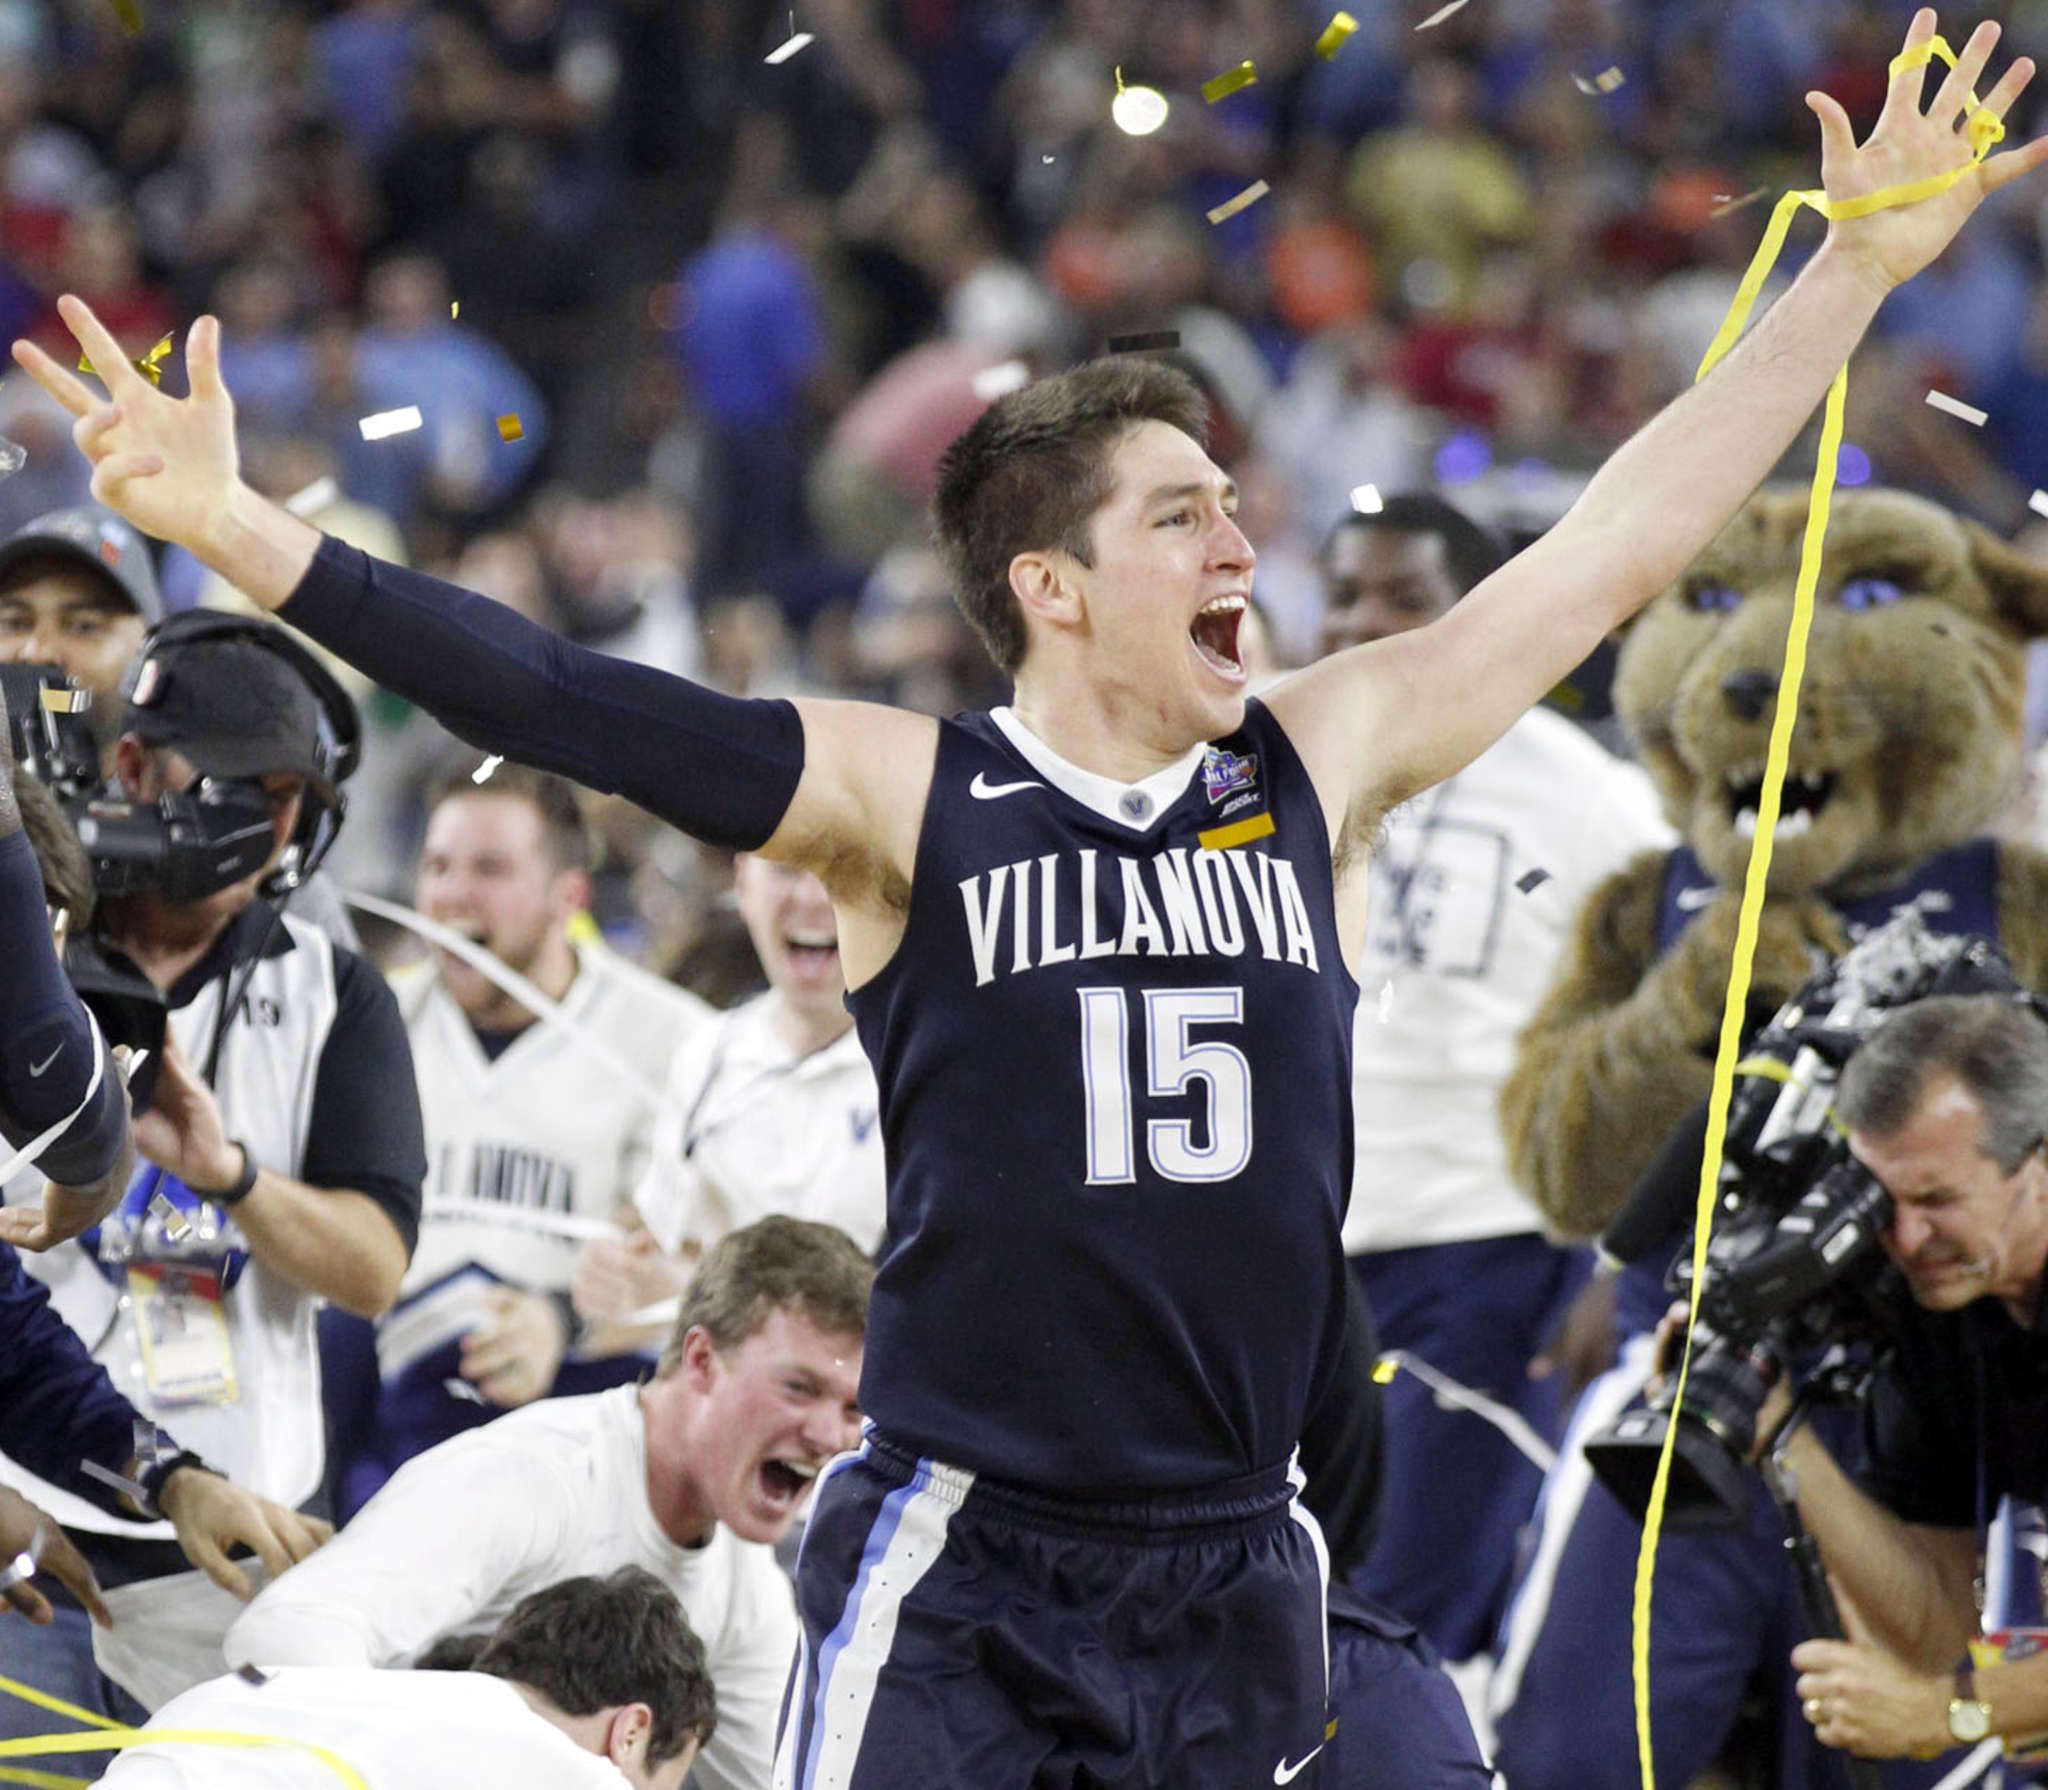 Villanova´s Ryan Arcidiacono passed to Kris Jenkins for the winning, last-second shot against North Carolina.